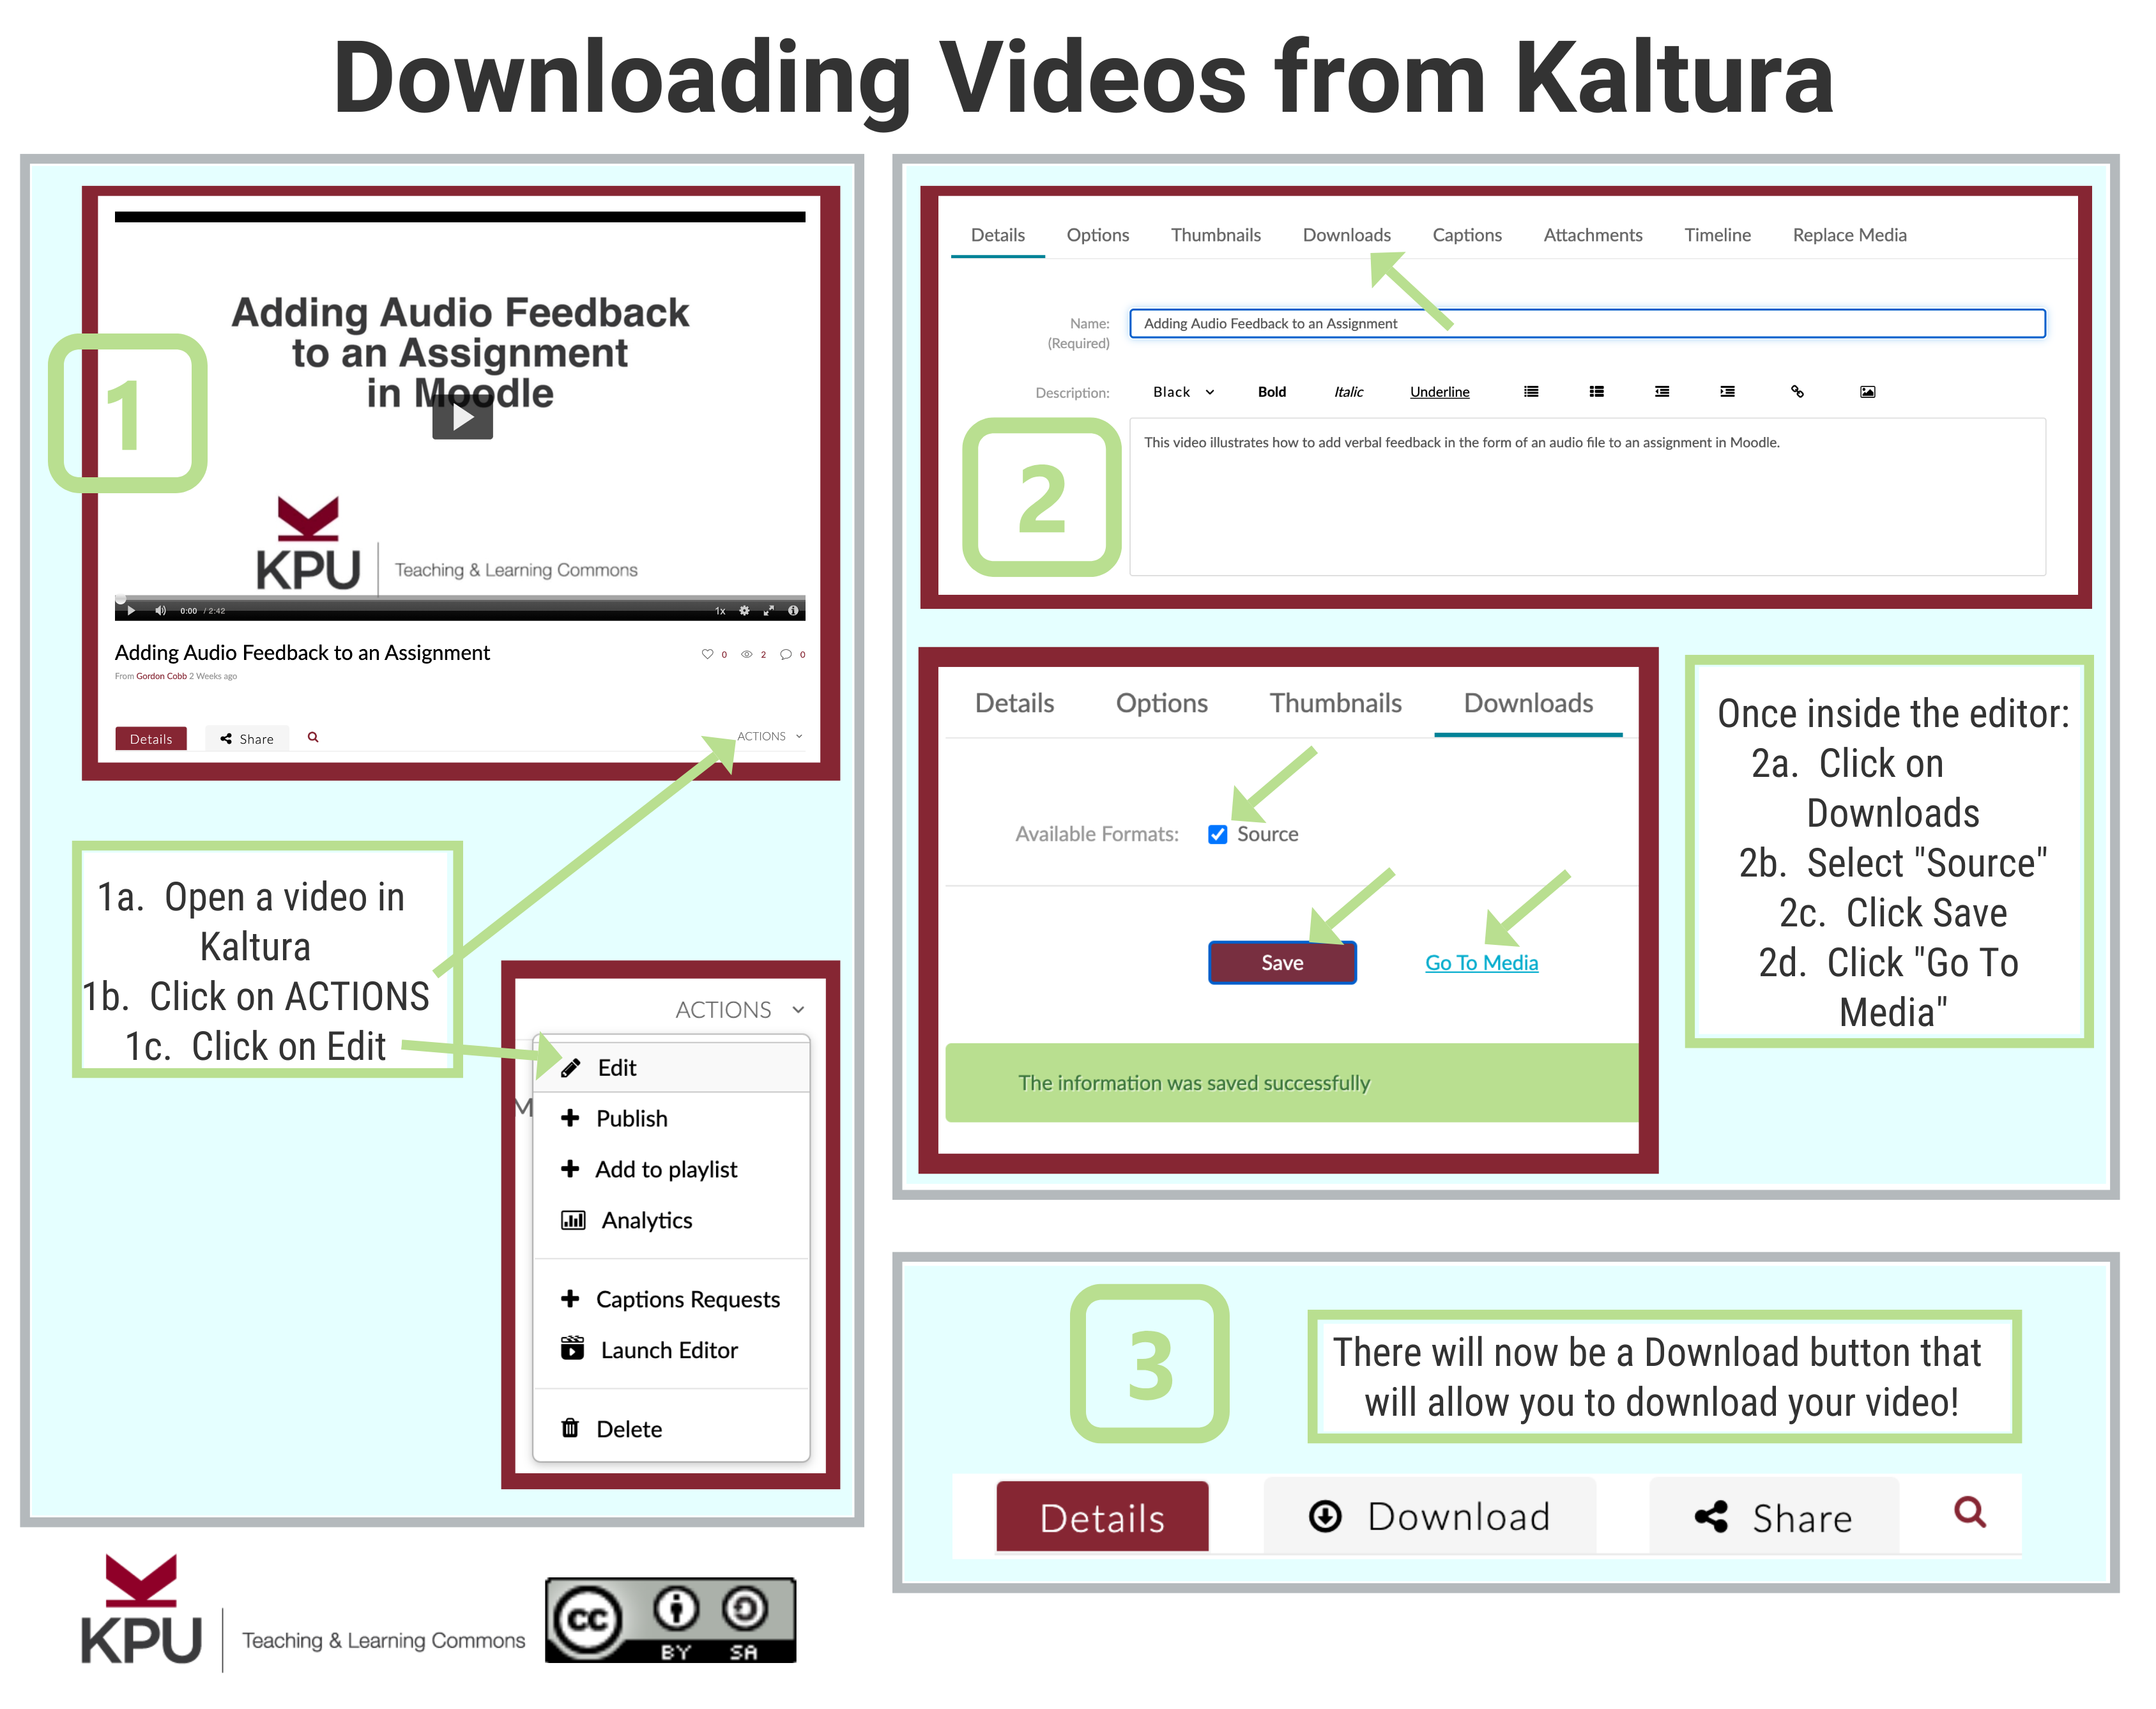 infographic for downloading videos from kaltura